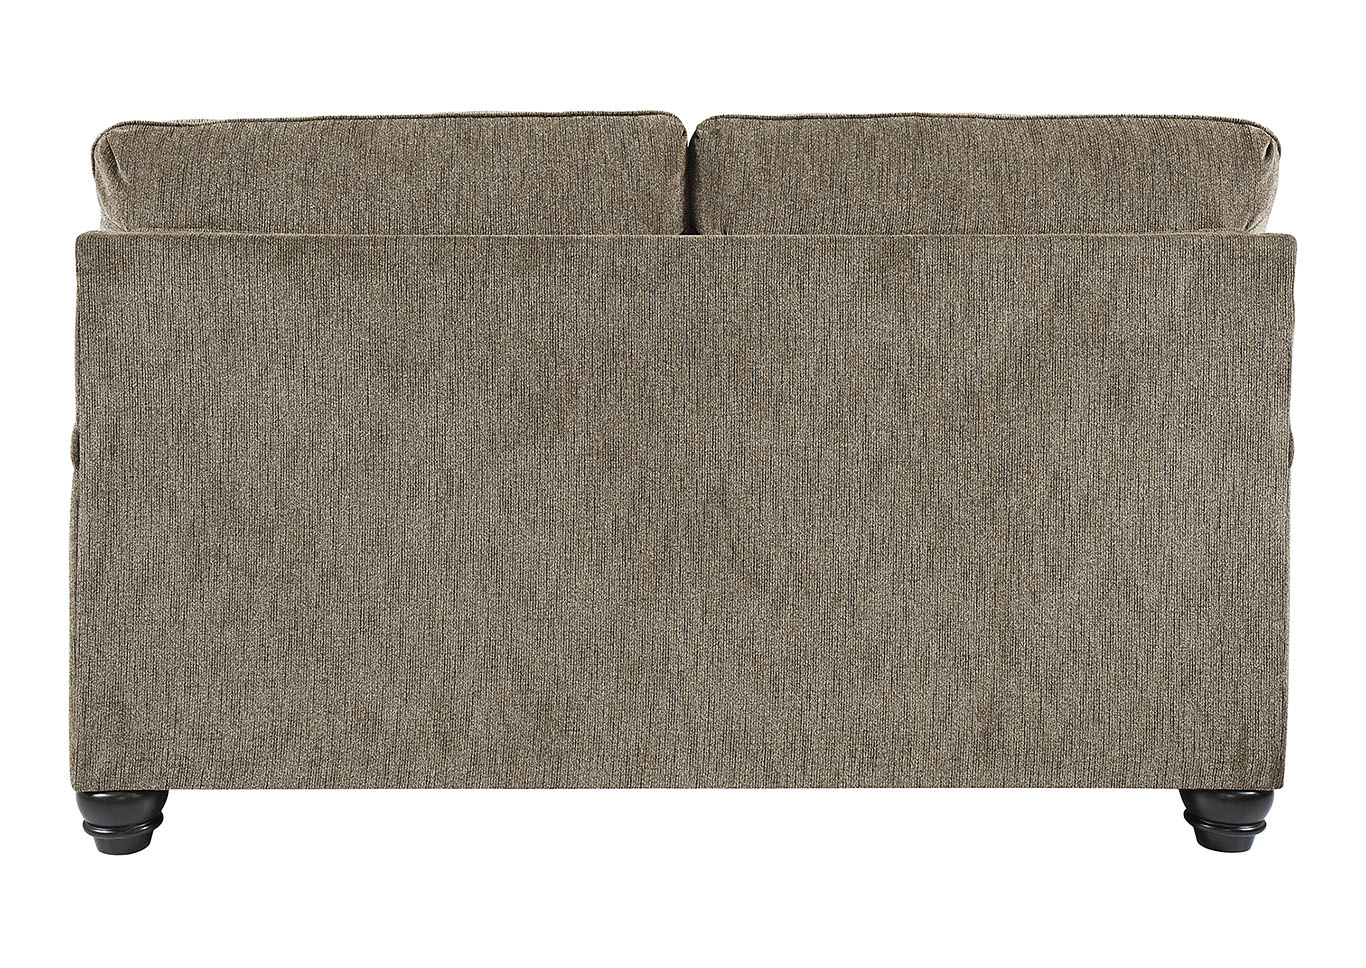 Braemar Brown Loveseat w/4 Pillows,Signature Design By Ashley